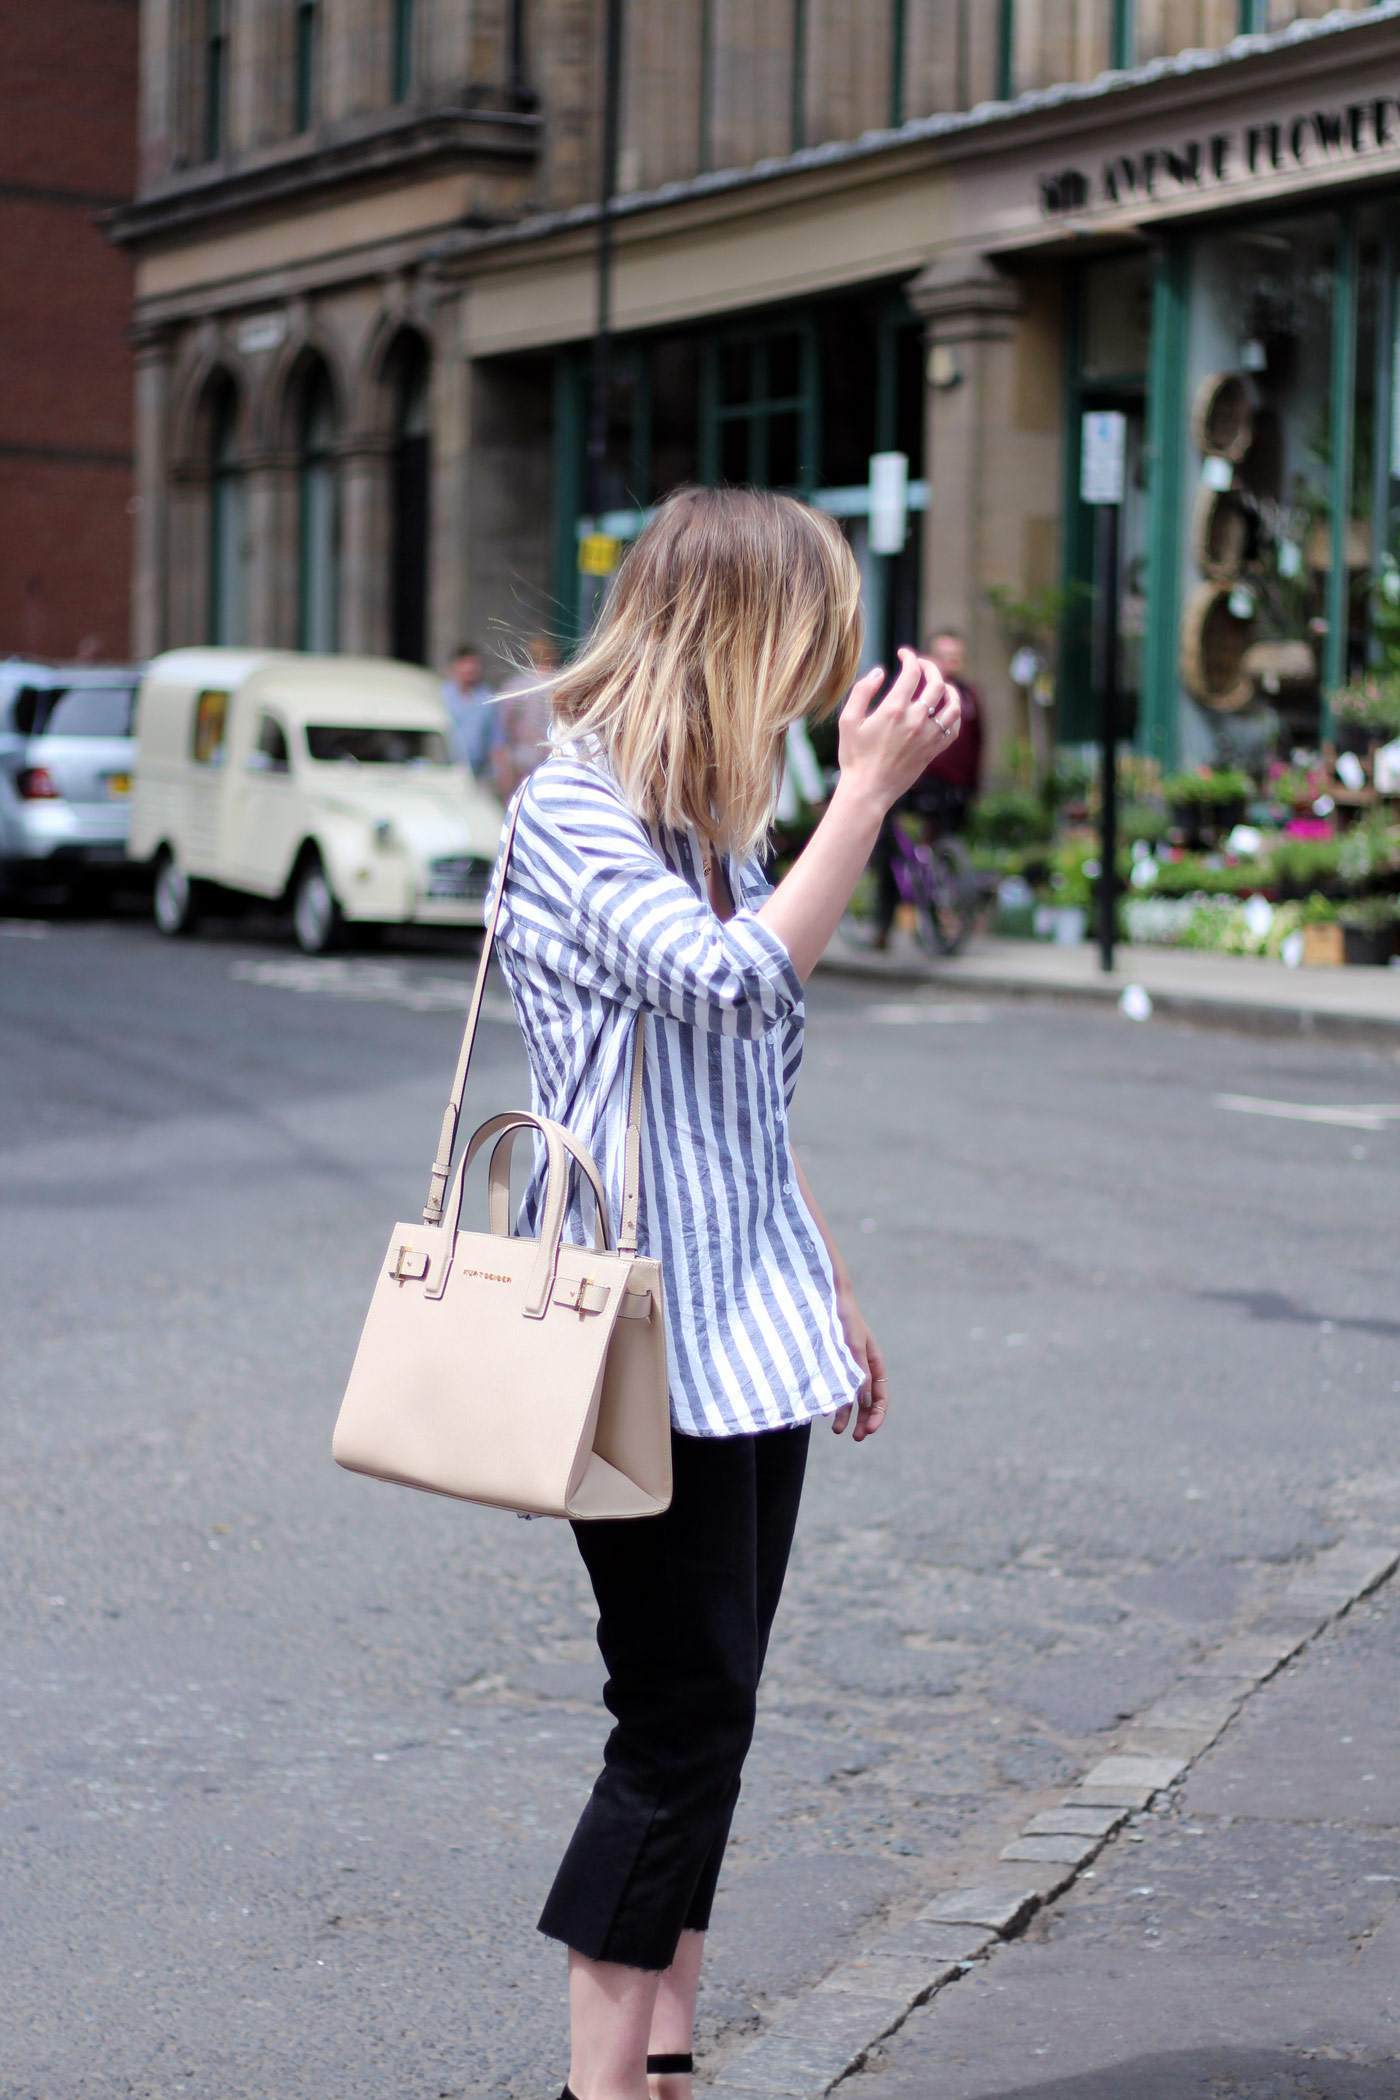 kurt-geiger-espadrille-wedge-heel-black-beige-bag-asos-stripe-shirt-celine-audrey-sunglasses-10